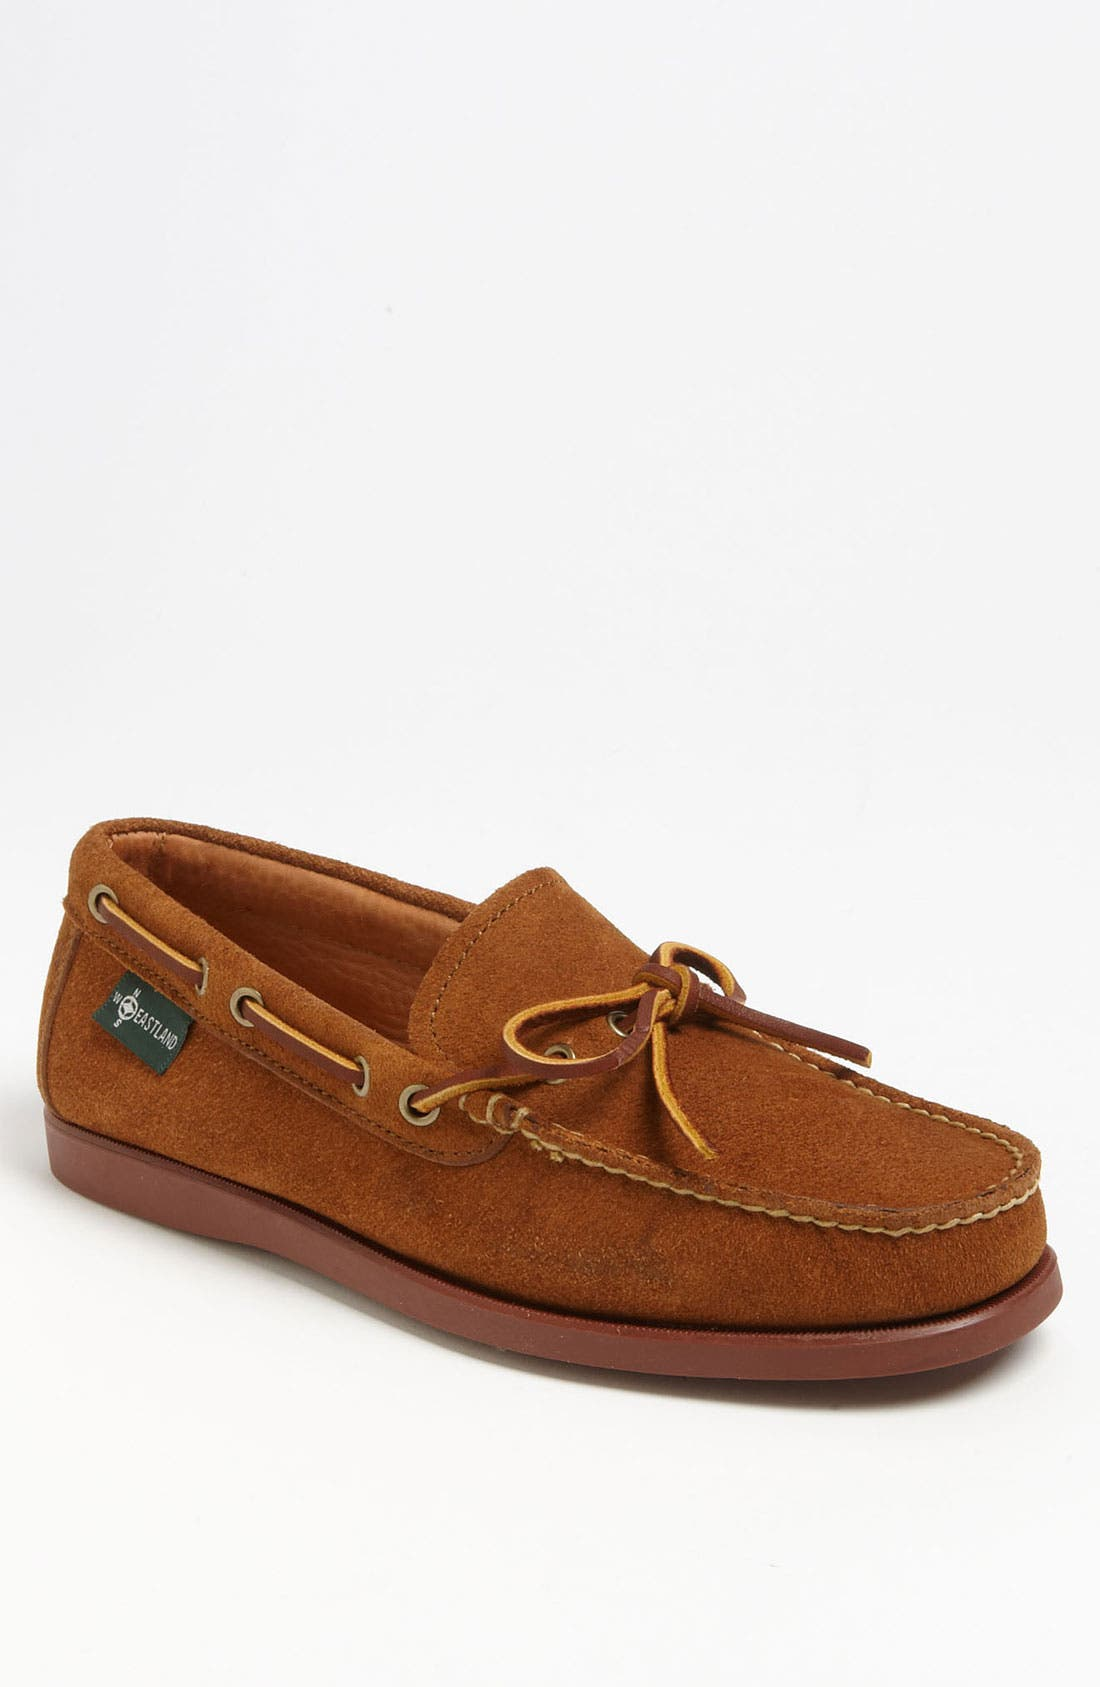 Alternate Image 1 Selected - Eastland 'Yarmouth 1955' Boat Shoe (Online Only)